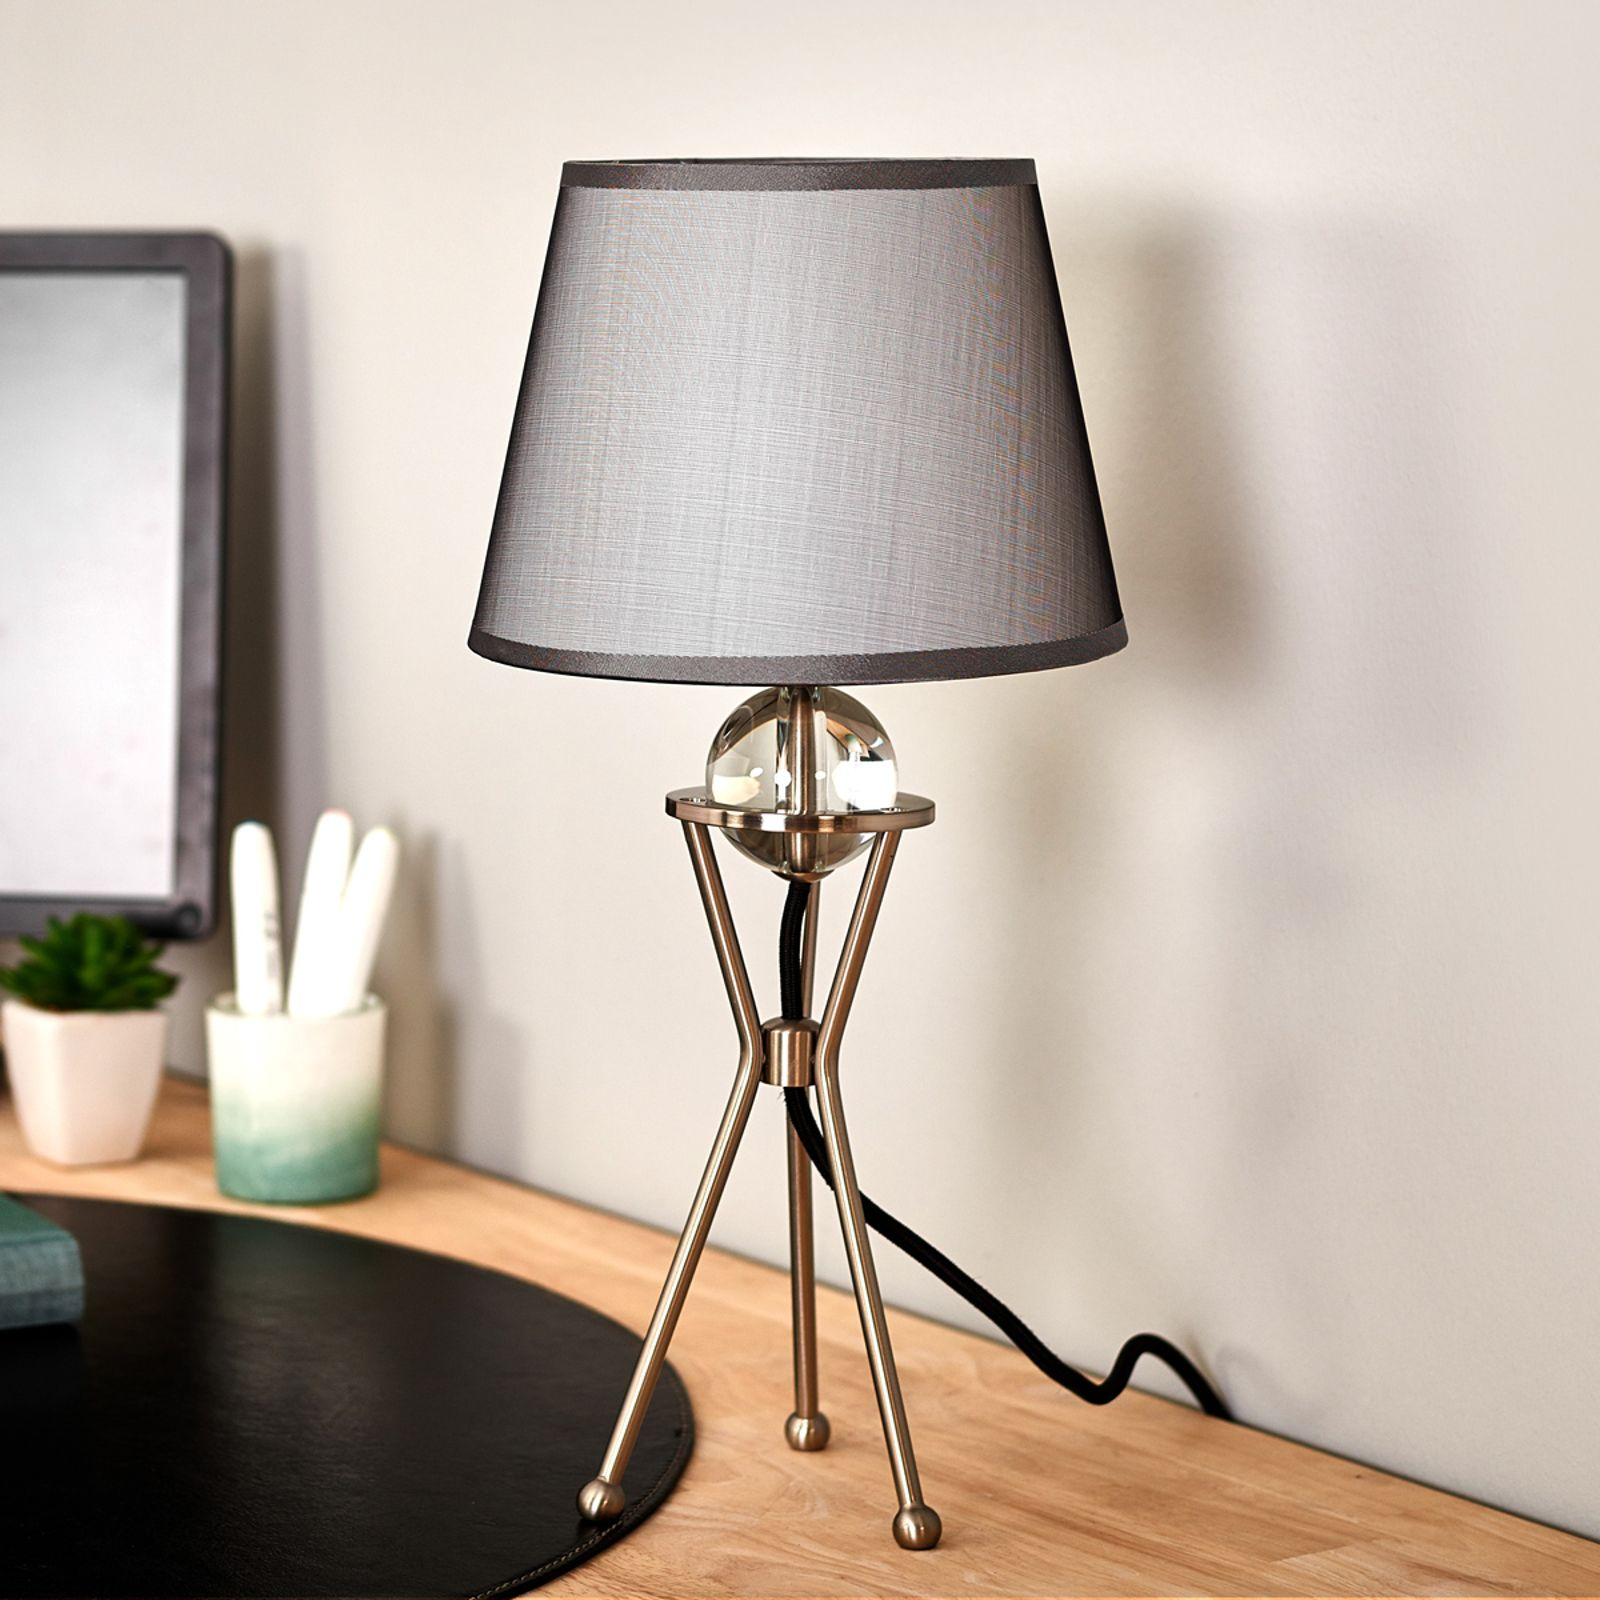 Pivotable grey table lamp Zsa by Pamalux